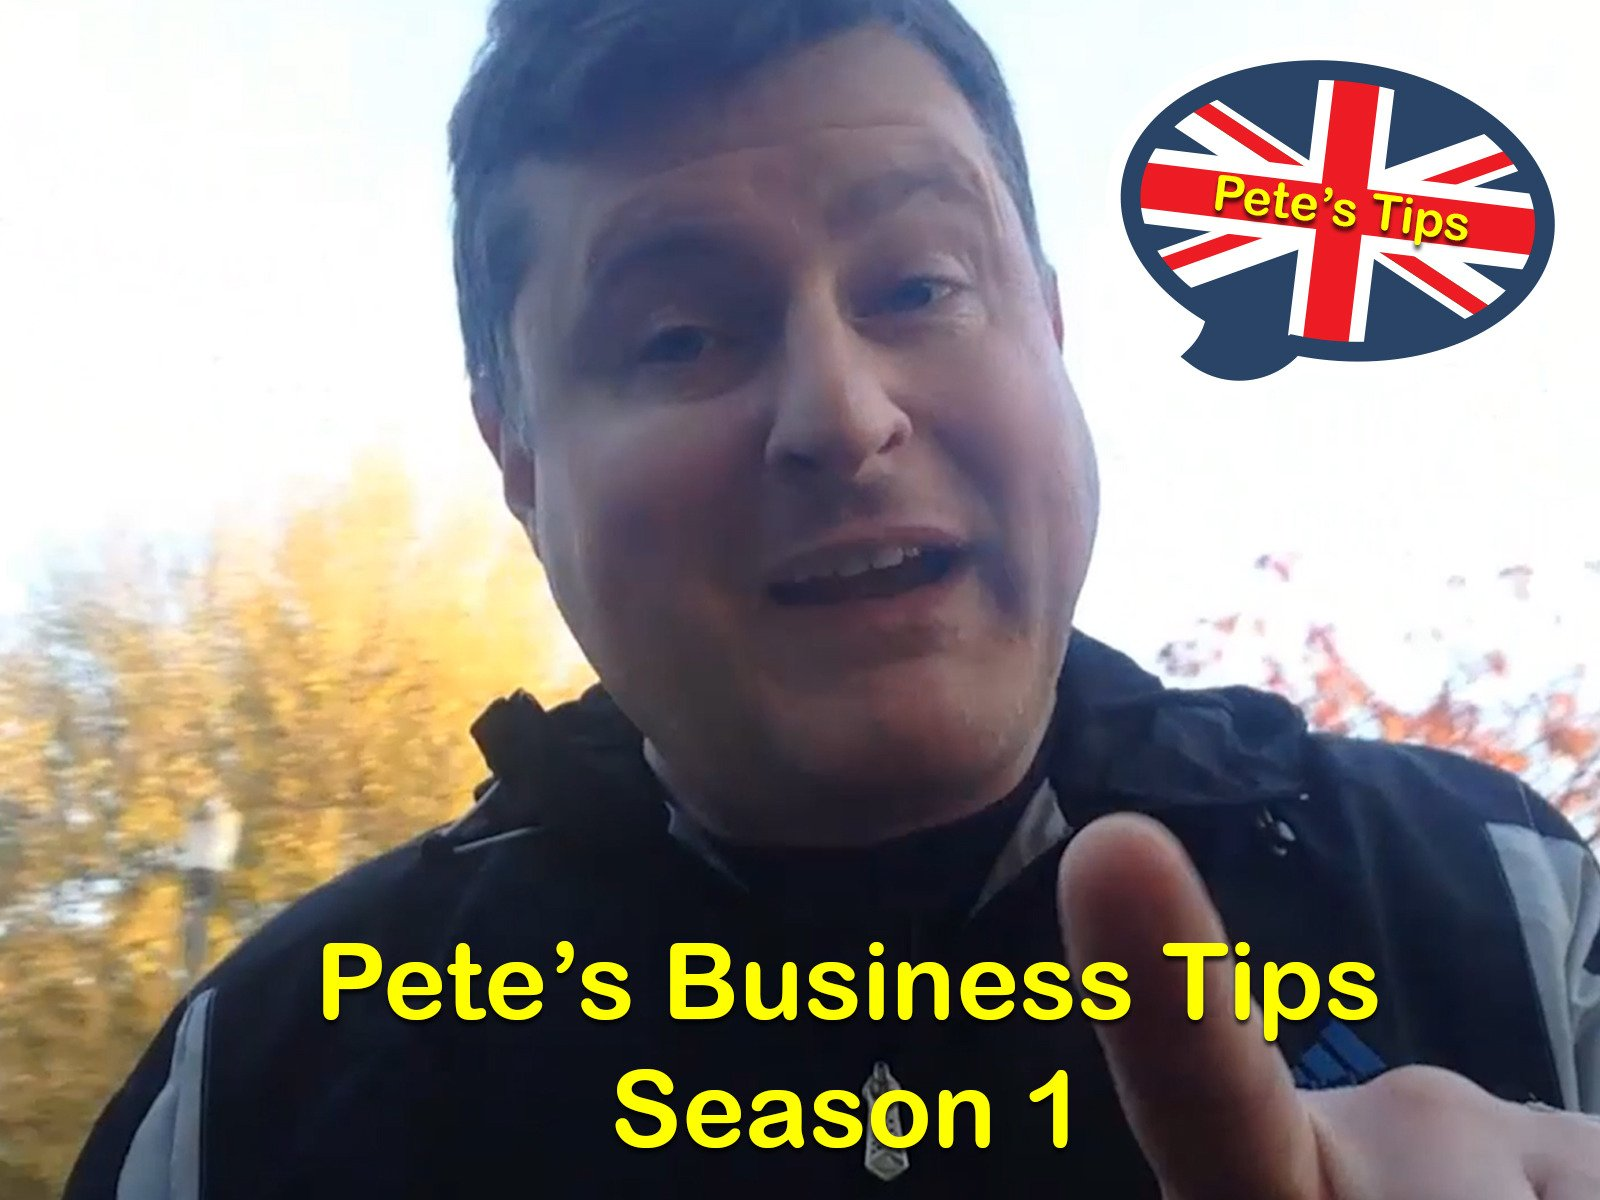 Pete's Tips on Amazon Prime Instant Video UK